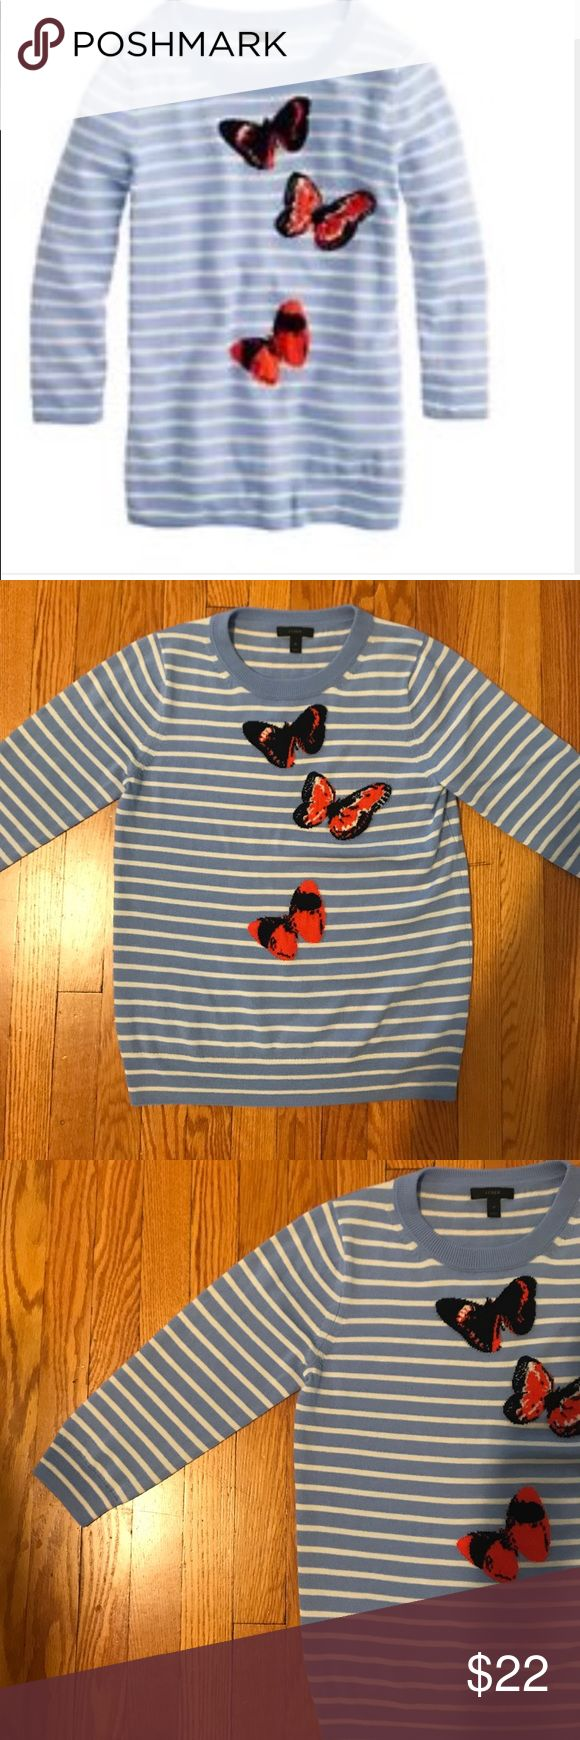 J Crew butterfly Tippi sweater J Crew butterfly Tippi sweater. Size medium. EUC. Light blue with cream stripes and orange and black butterflies J. Crew Sweaters